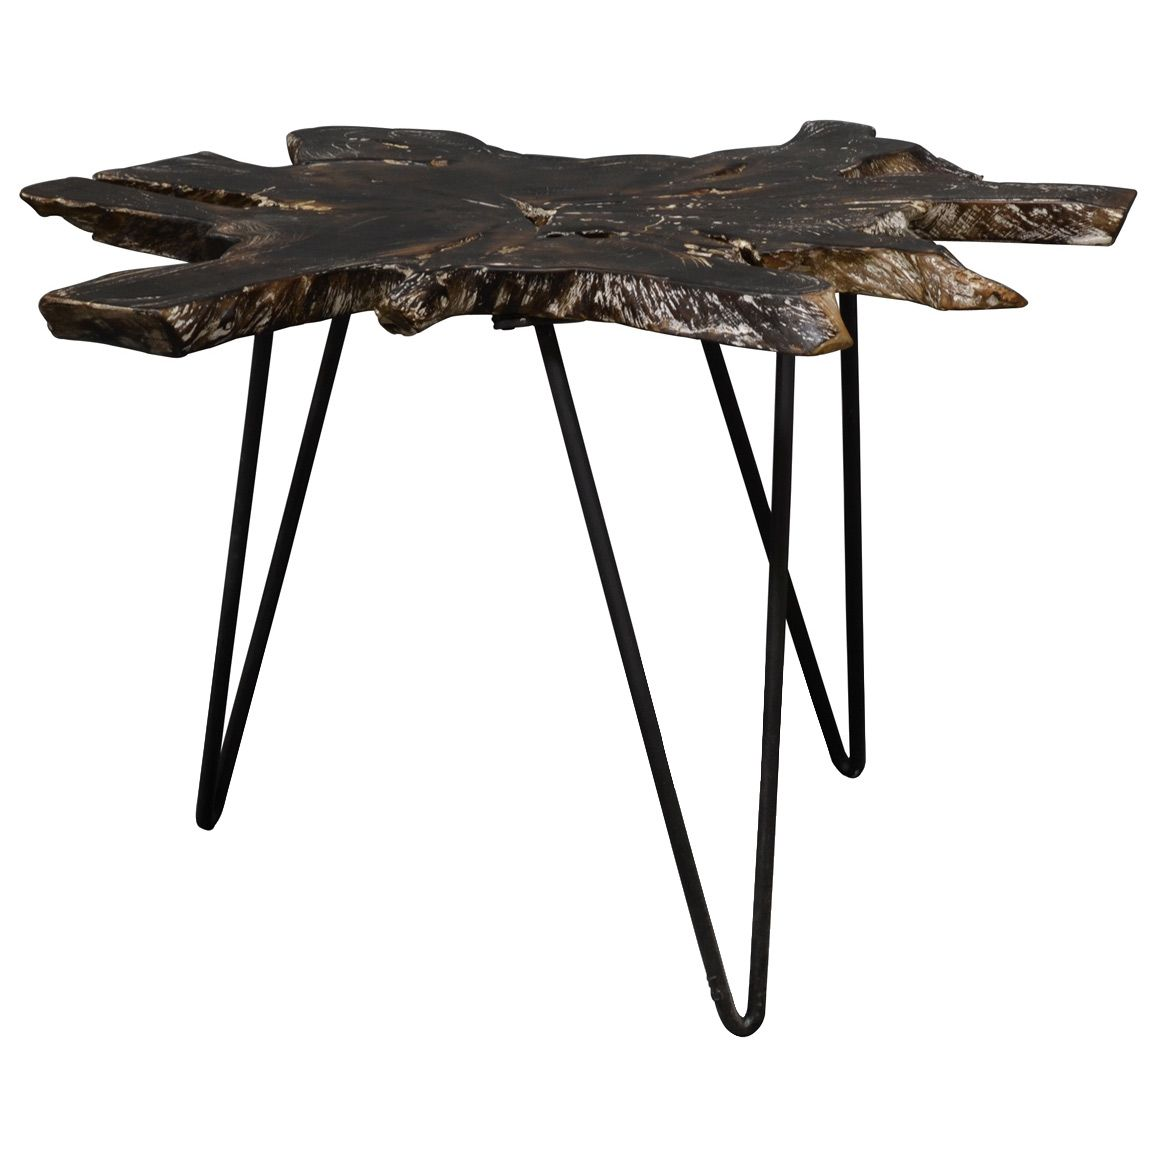 10 Best Mesa Pizarra Teresa Images On Pinterest Whiteboard  # Muebles Dayer Esperanza